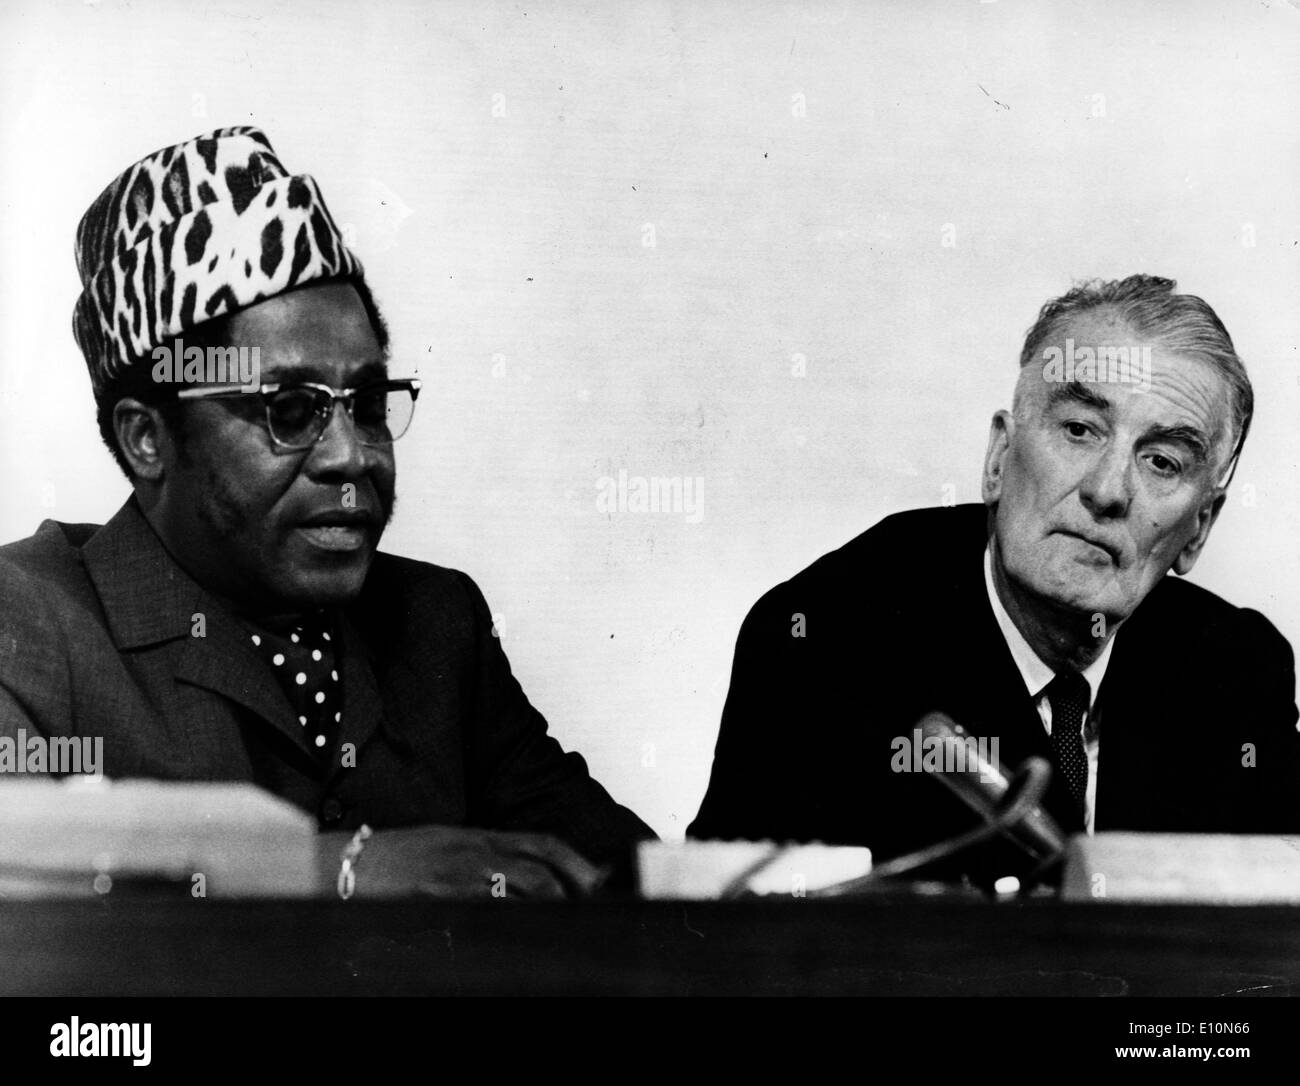 ILO general manager WILFRED JENKS (GB), to the left the president of the Conference TSHIABOLA BINTU'A (Zaire). - Stock Image